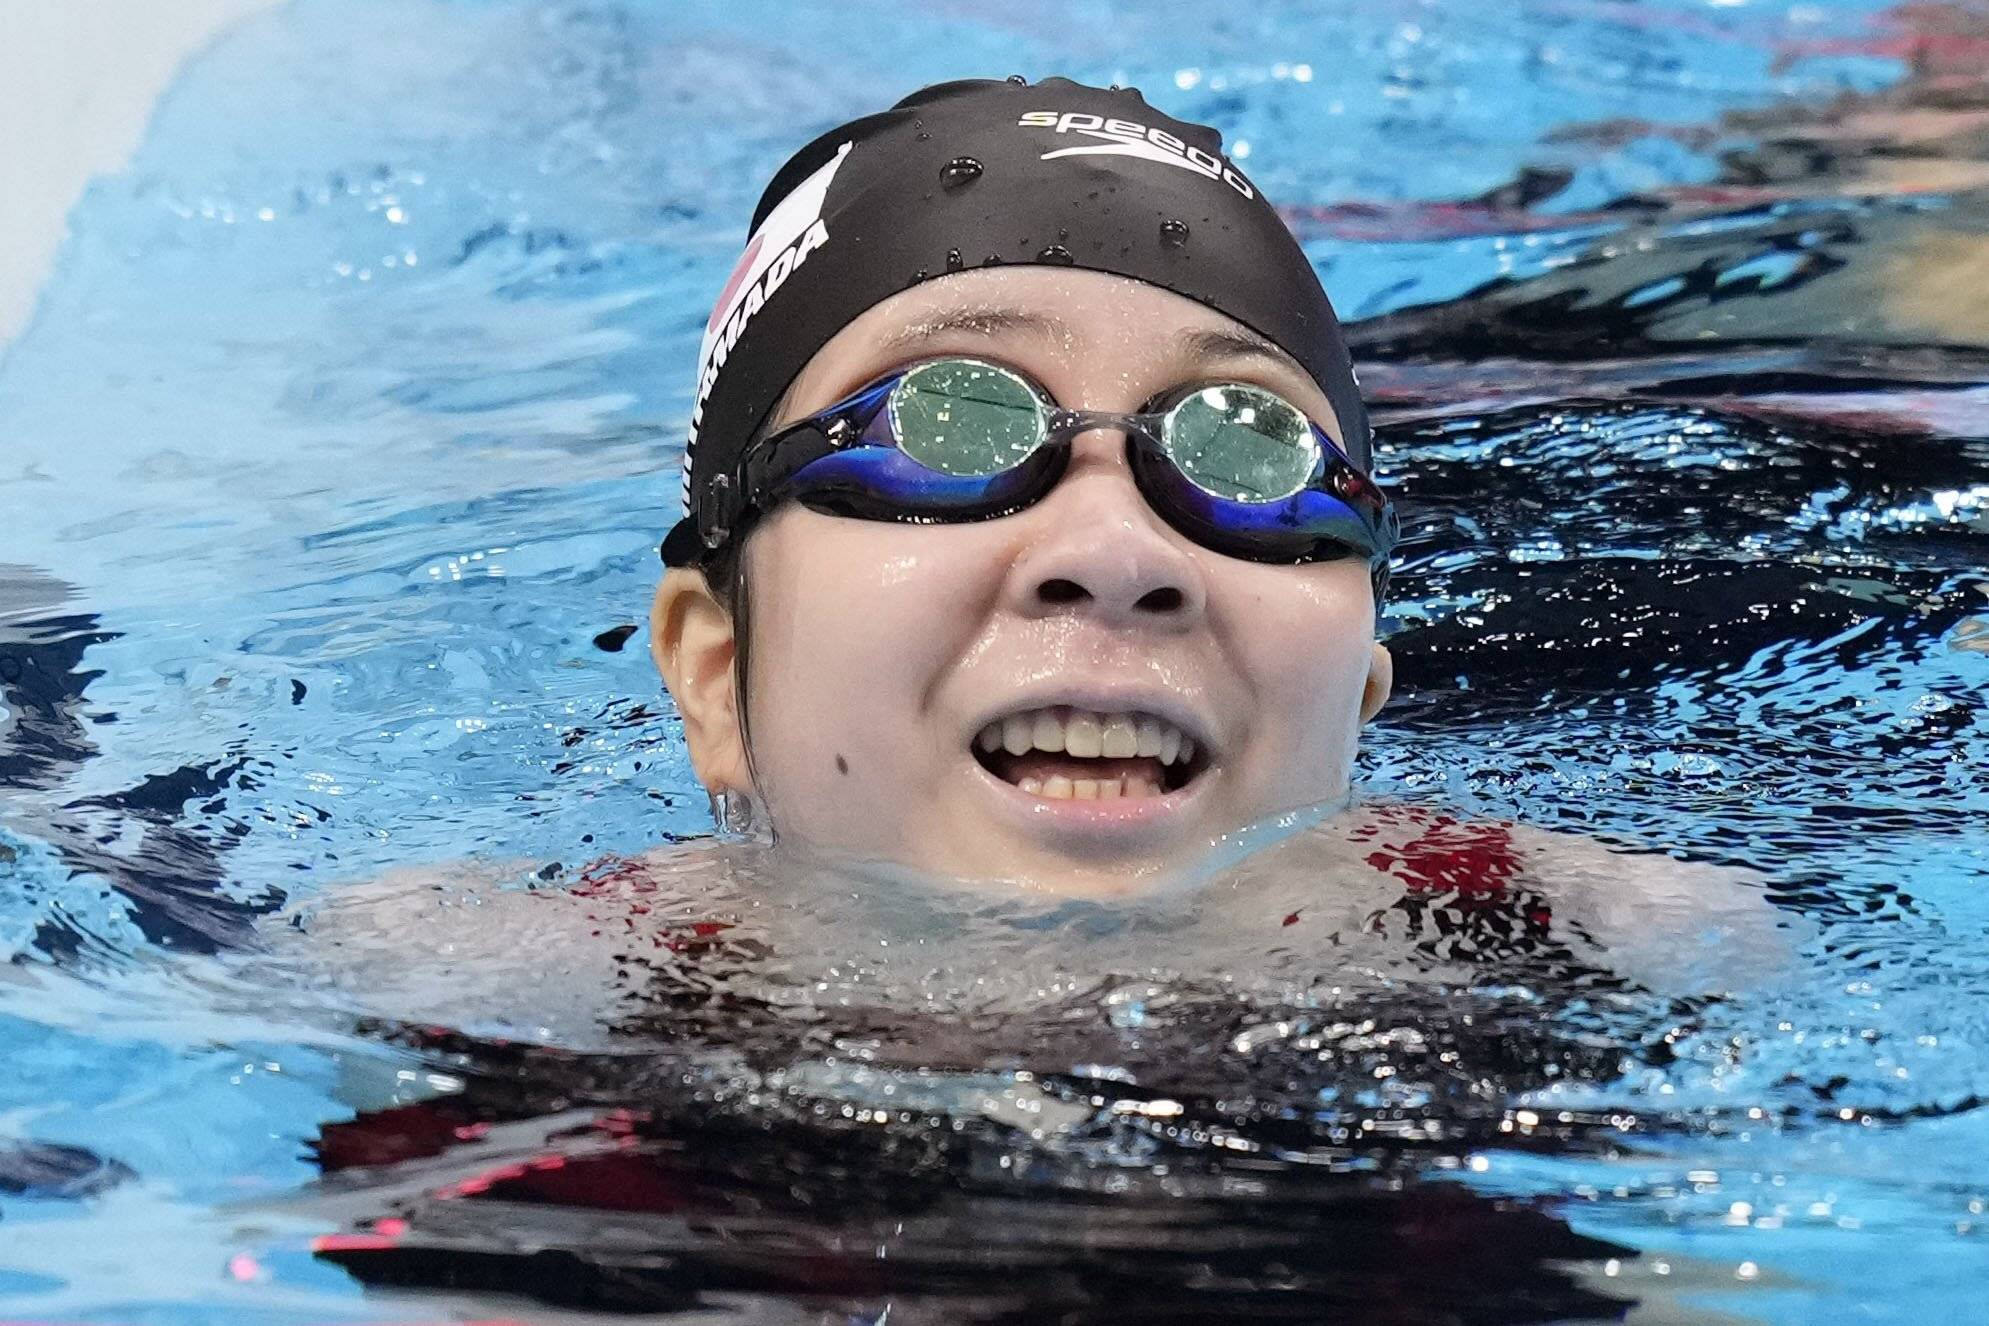 Miyuki Yamada after winning silver in women's 100-meter backstroke S2 class, Japan's first medal of the Paralympic Games   KYODO